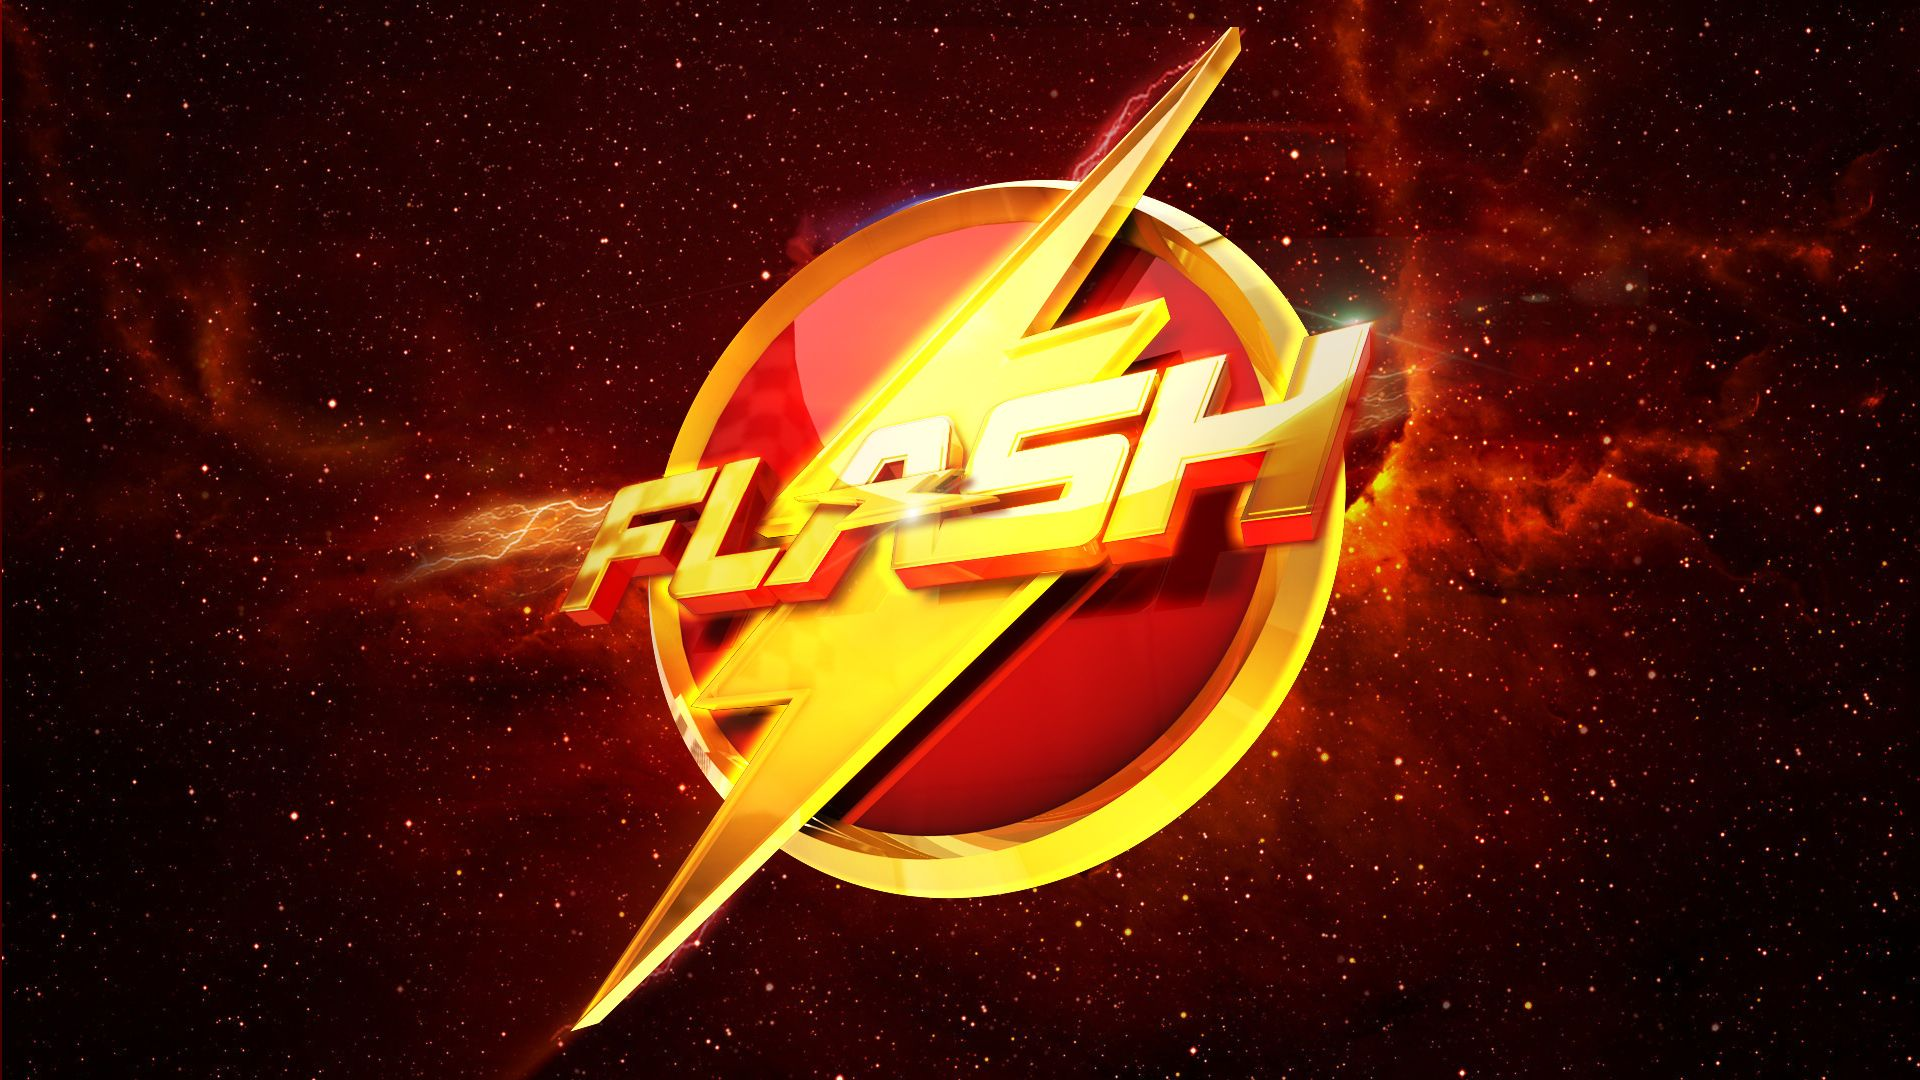 The Flash CW Zoom Is Coming HD Desktop Wallpaper Widescreen